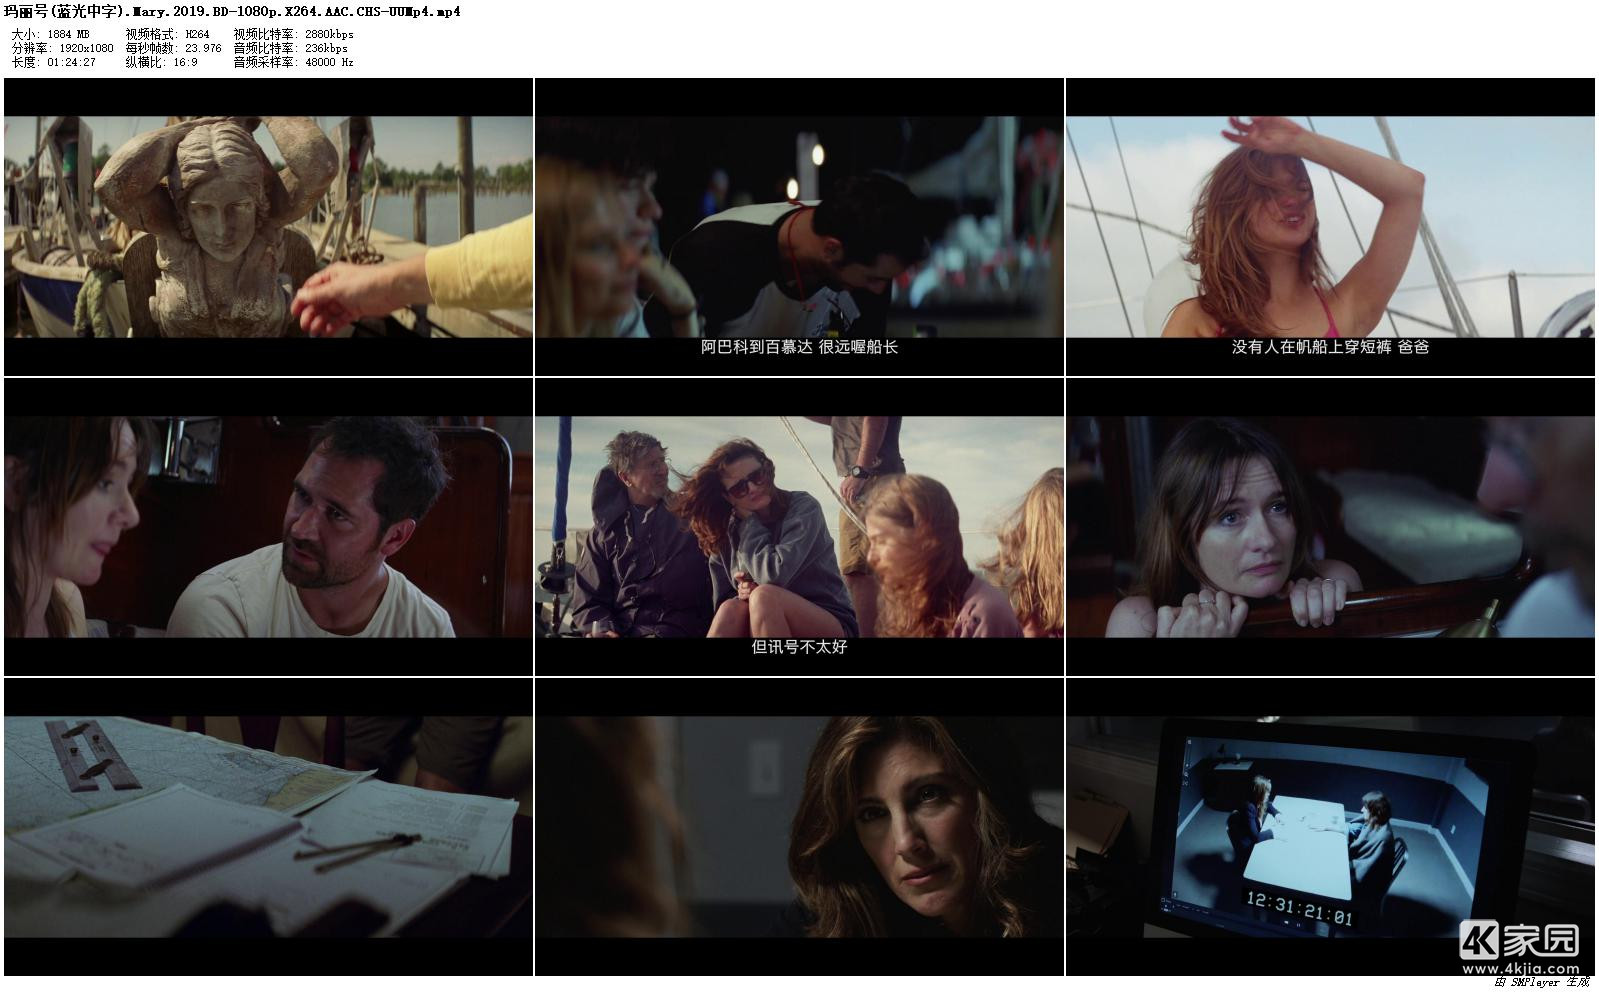 Mary.2019.BD-1080p.X264.AAC.CHS-UUMp4_preview.jpg